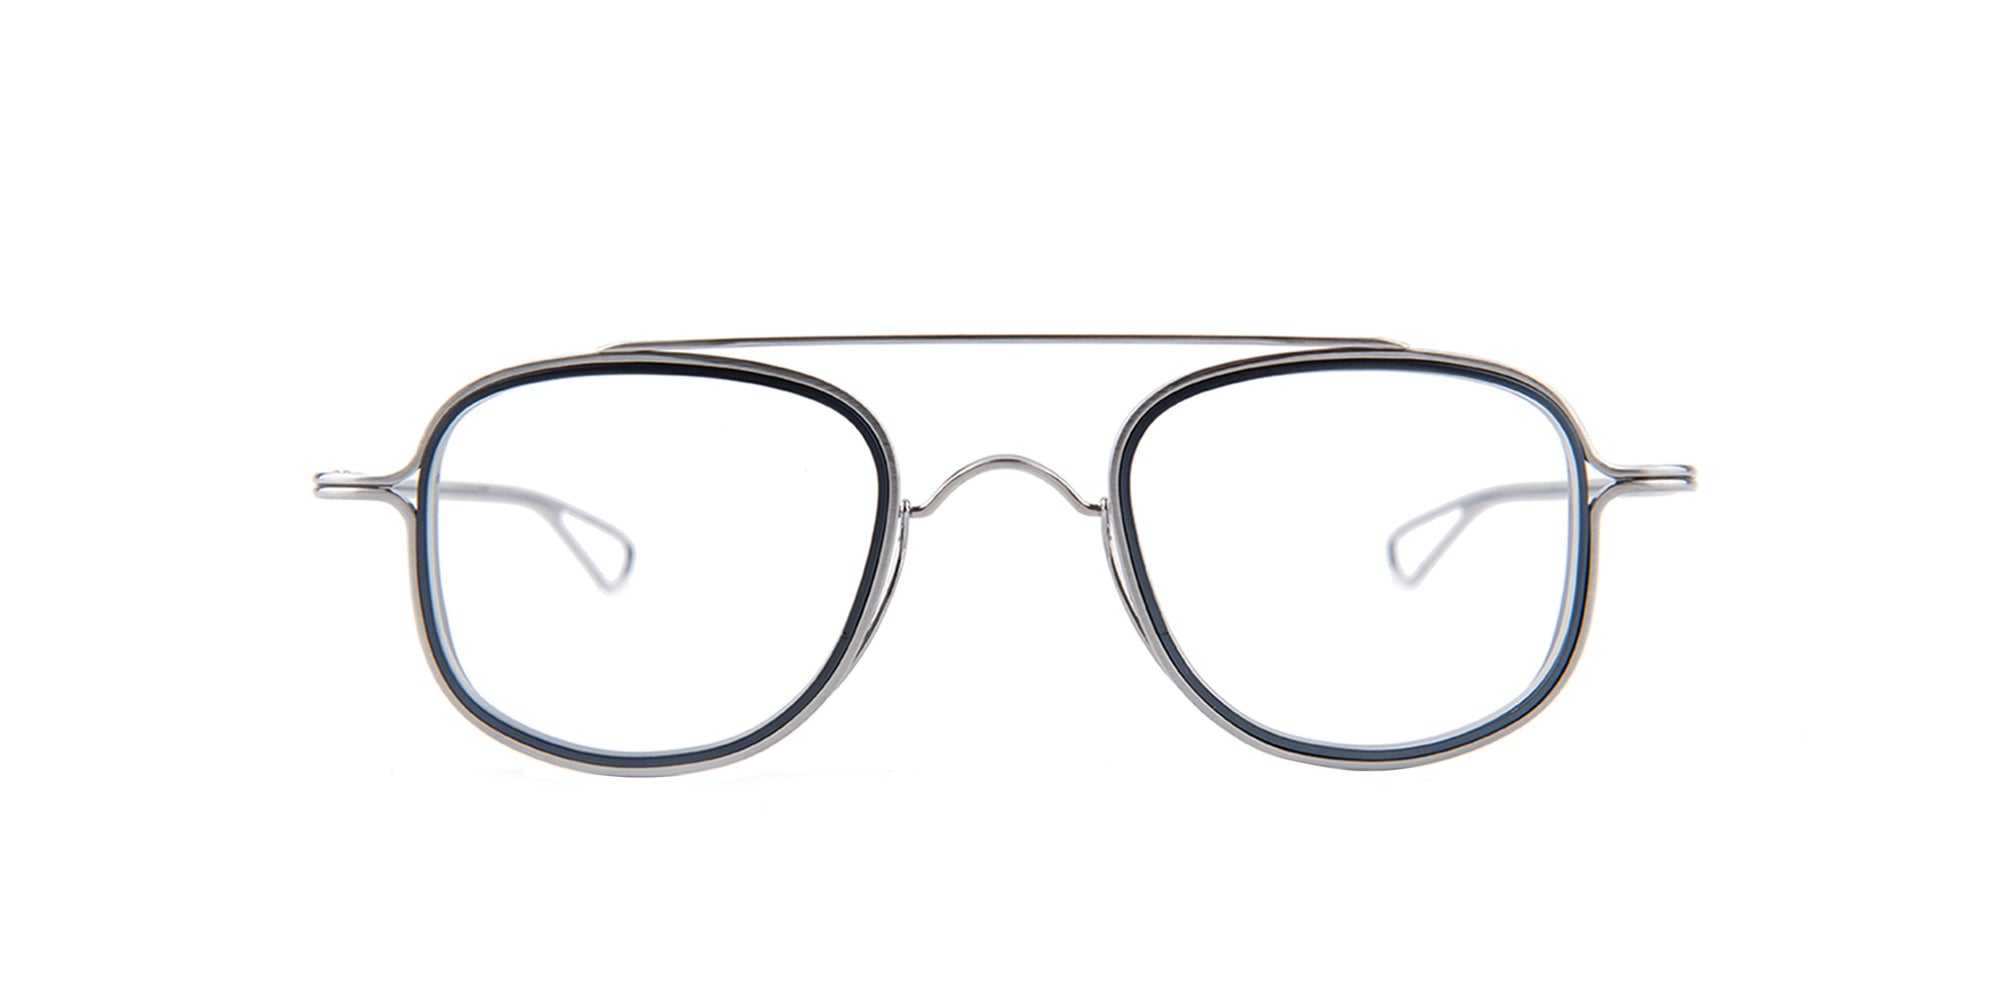 Dita - Tessel Silver Square Men Eyeglasses - 46mm-Eyeglasses-Designer Eyes